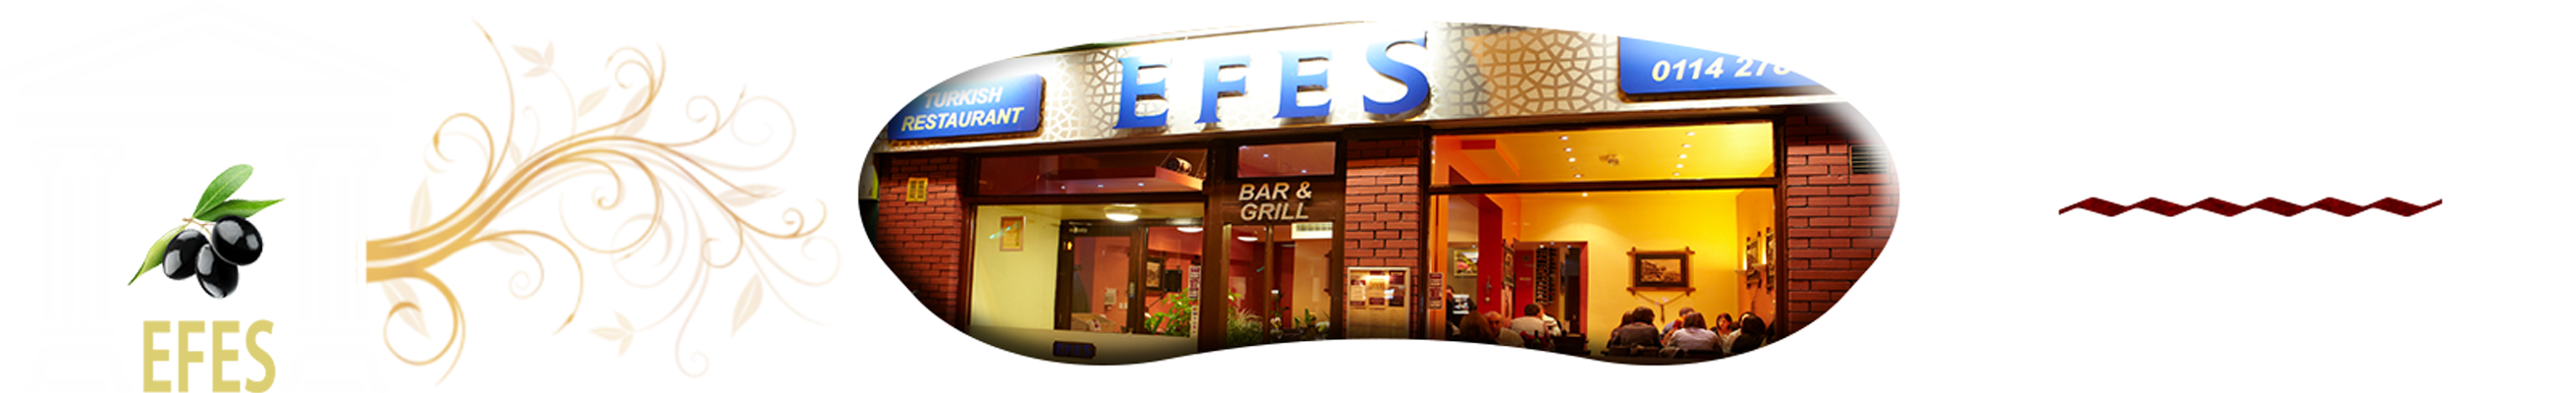 EFES BAR & GRILL Restaurant